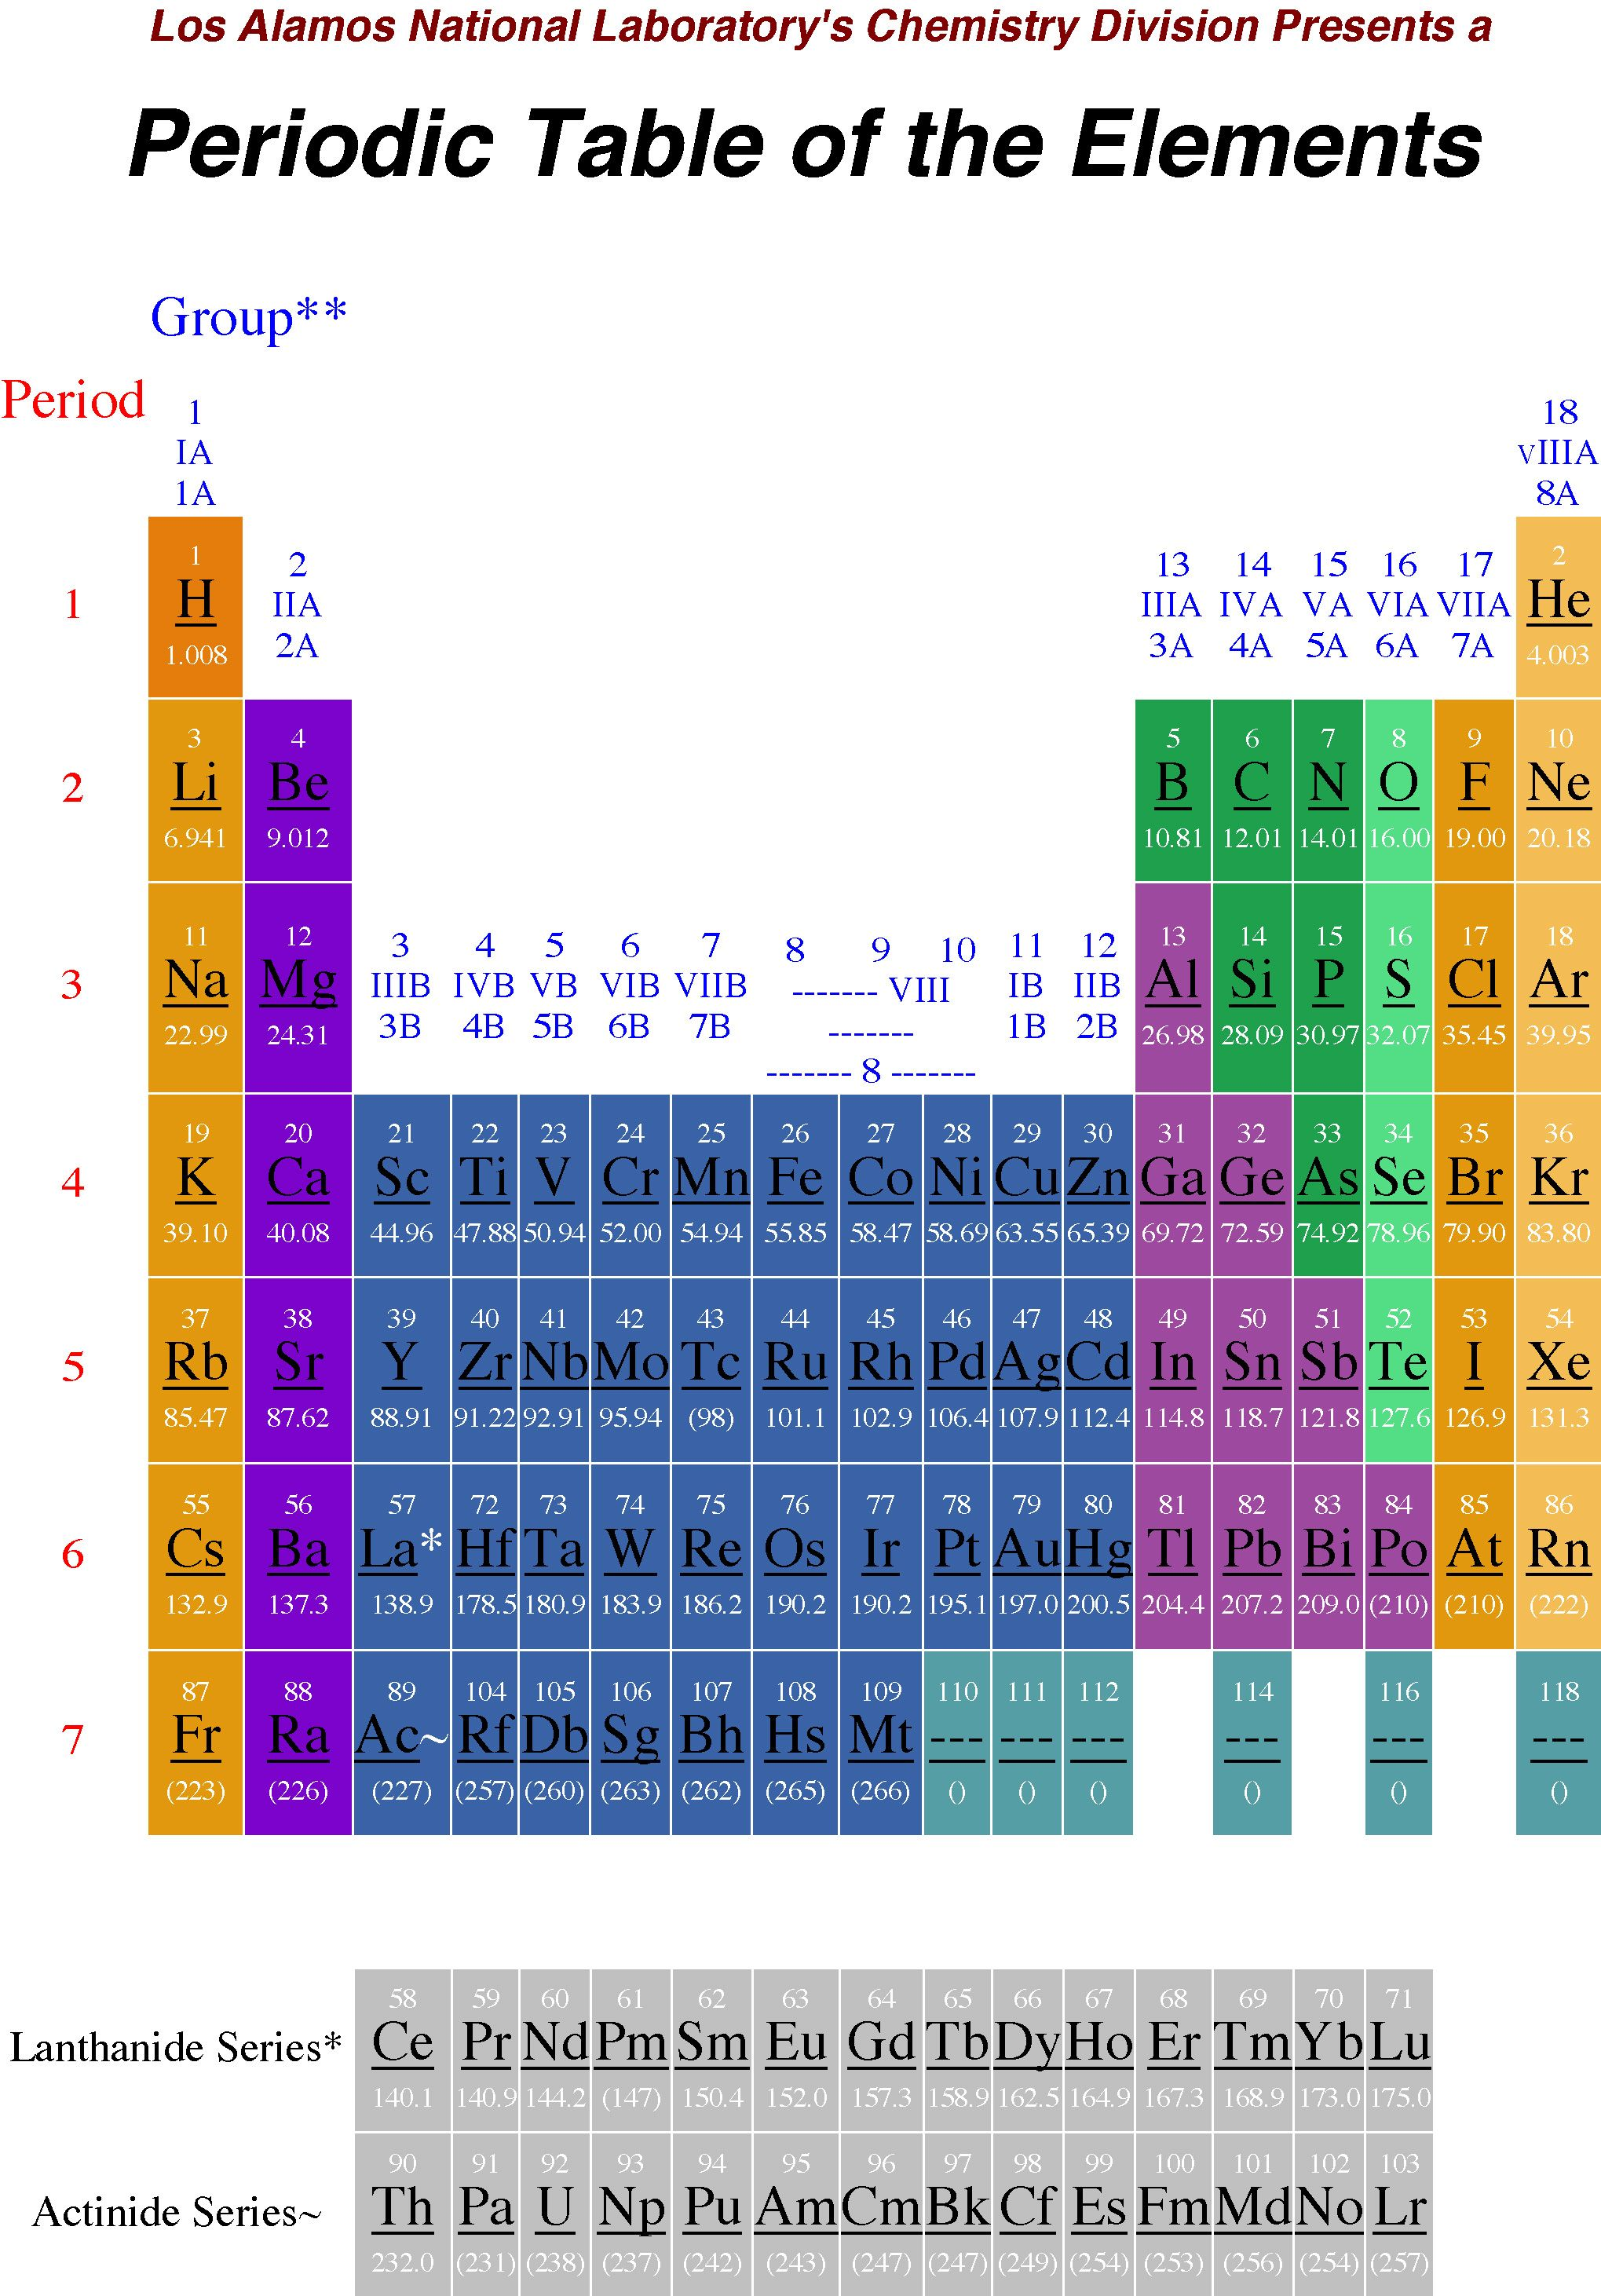 Periodic table of the elements los alamos national laboratorys periodic table of the elements los alamos national laboratorys chemistry division urtaz Image collections